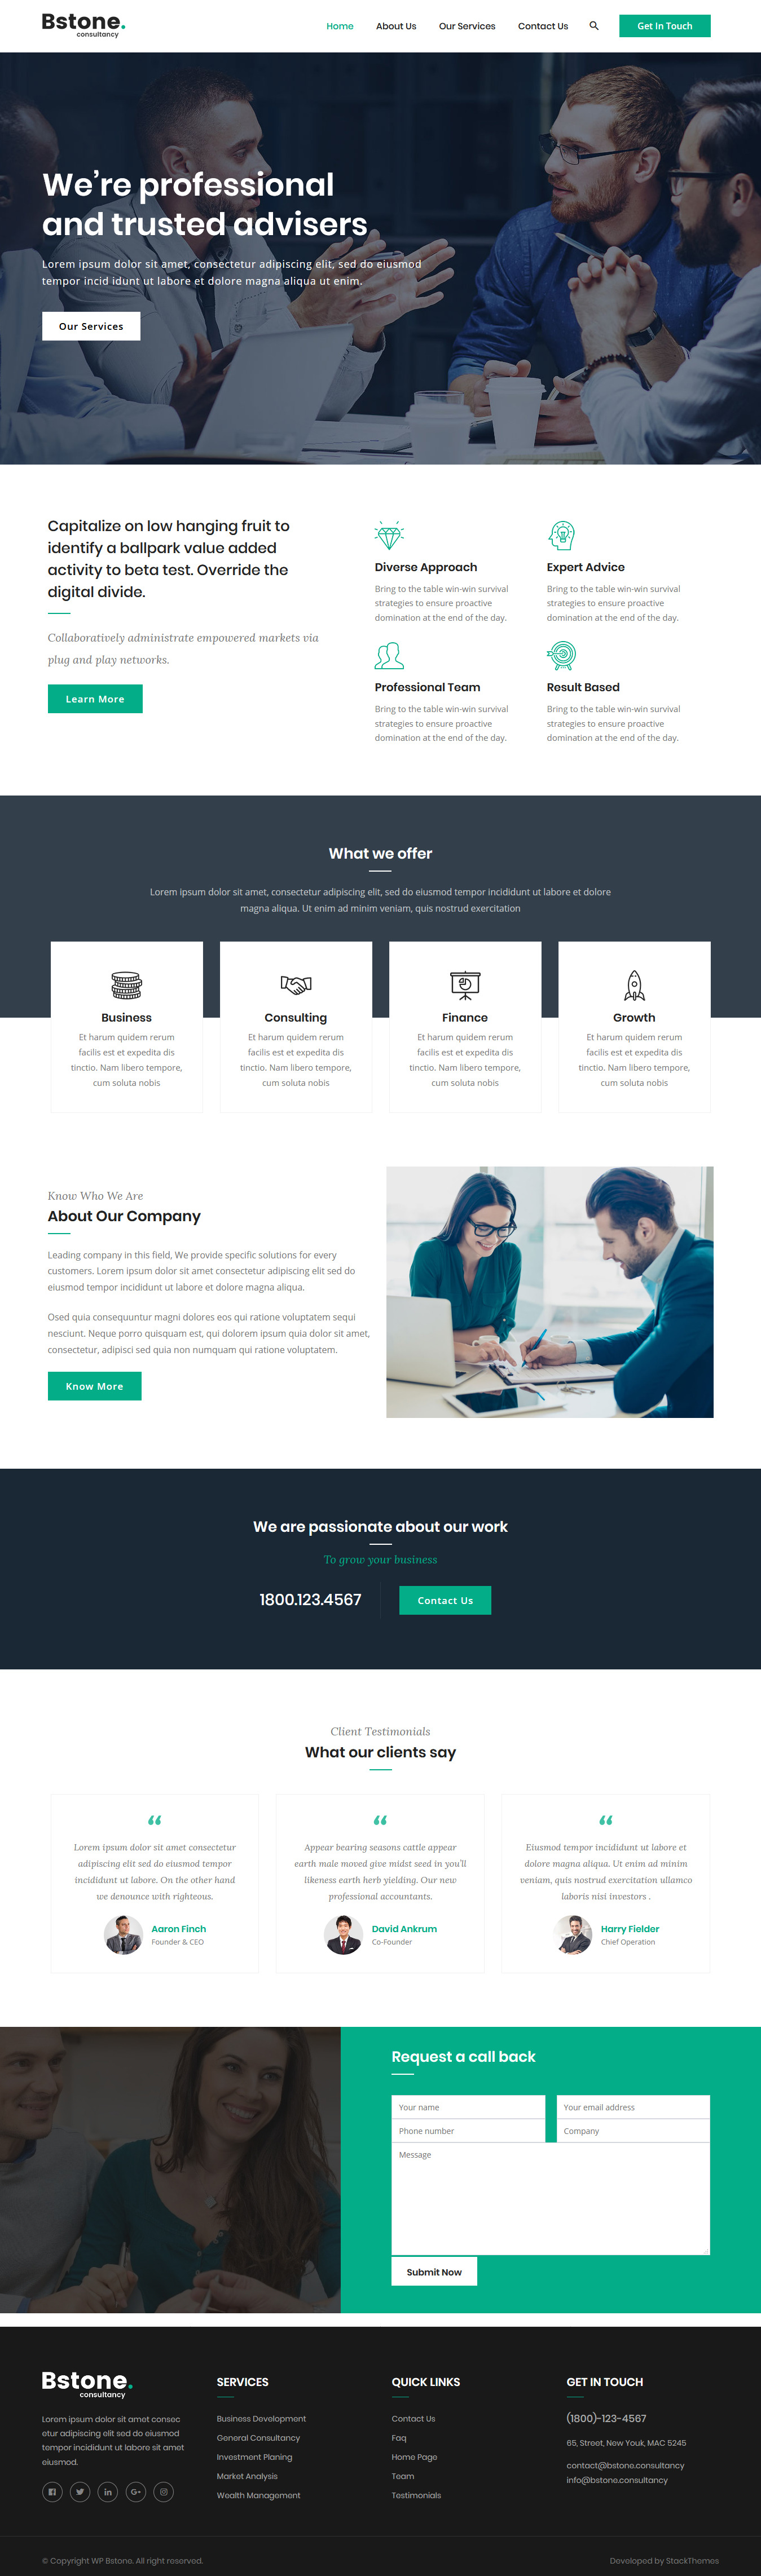 10+ Best Free BuddyPress WordPress Themes - AccessPress Themes